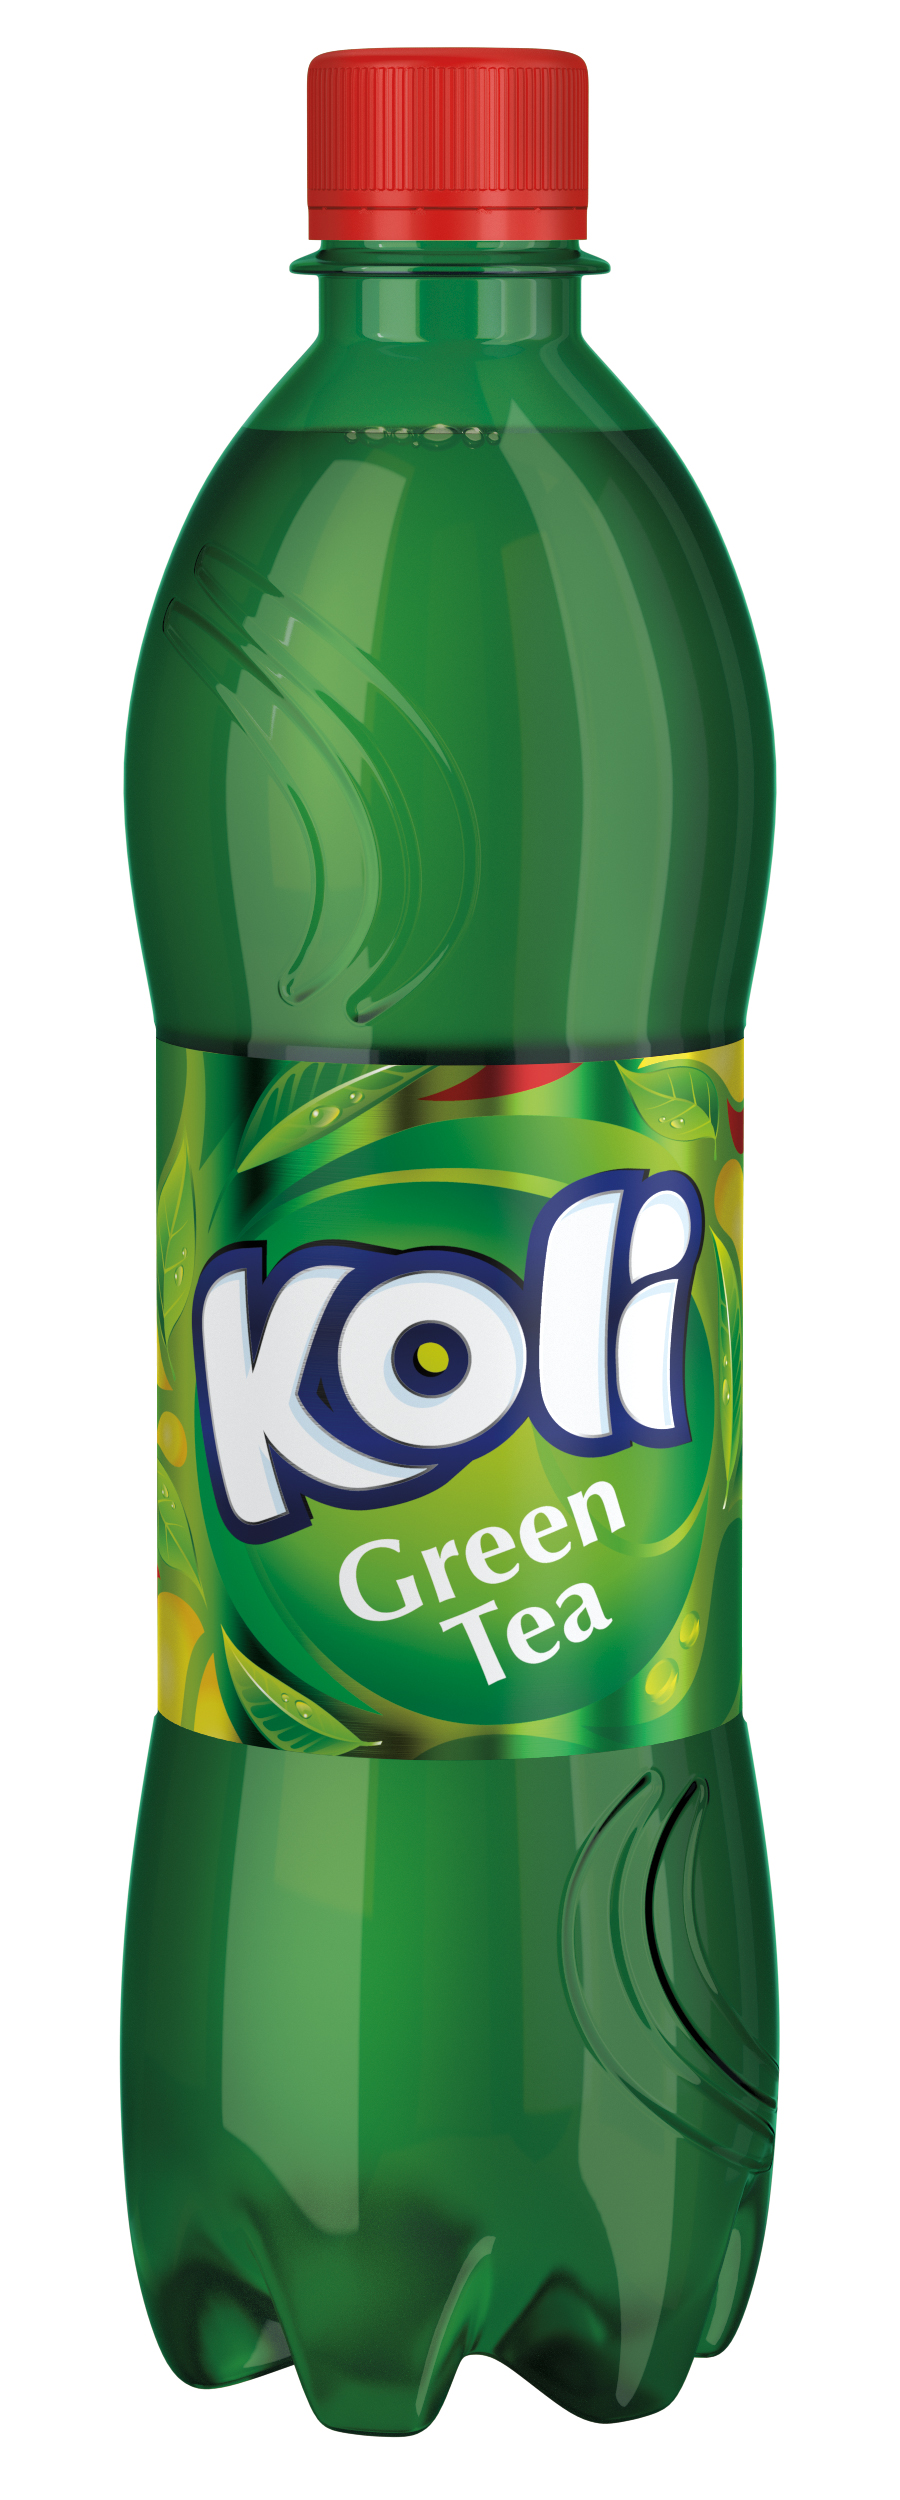 KOLI - GREEN TEA  0,5L